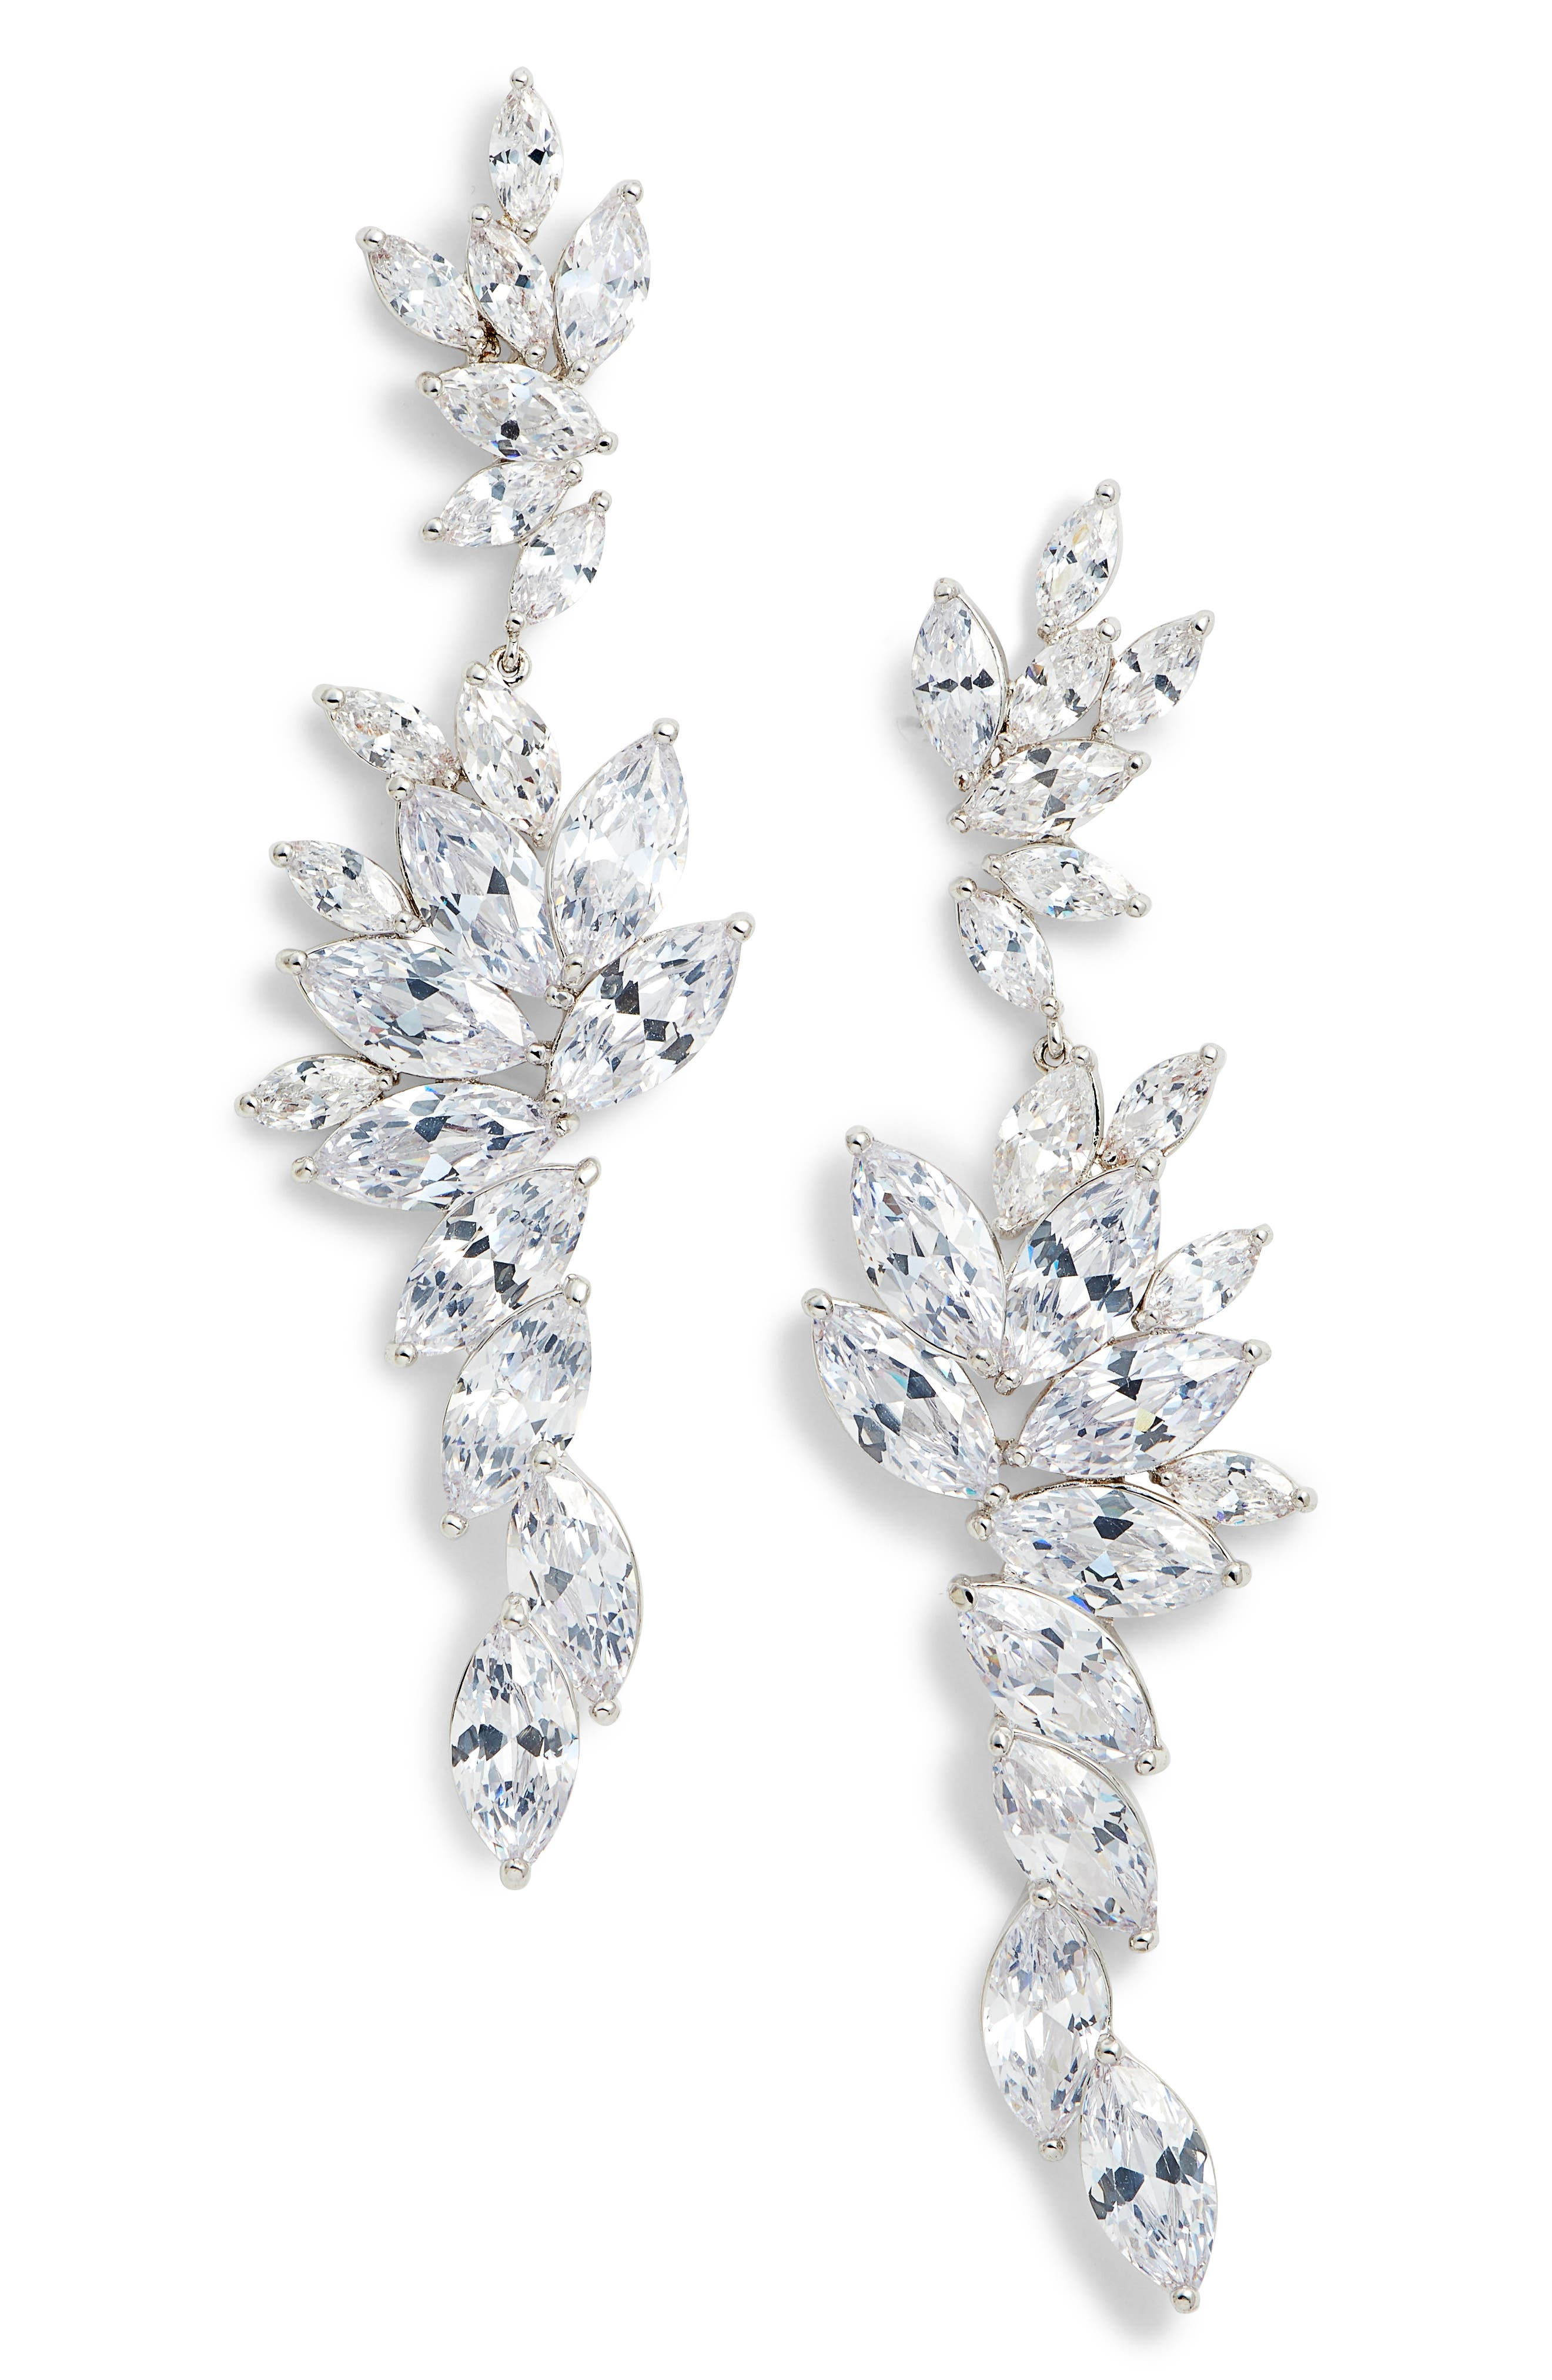 Layered Marquise Cubic Zirconia Statement Earrings,                         Main,                         color, White/ Silver